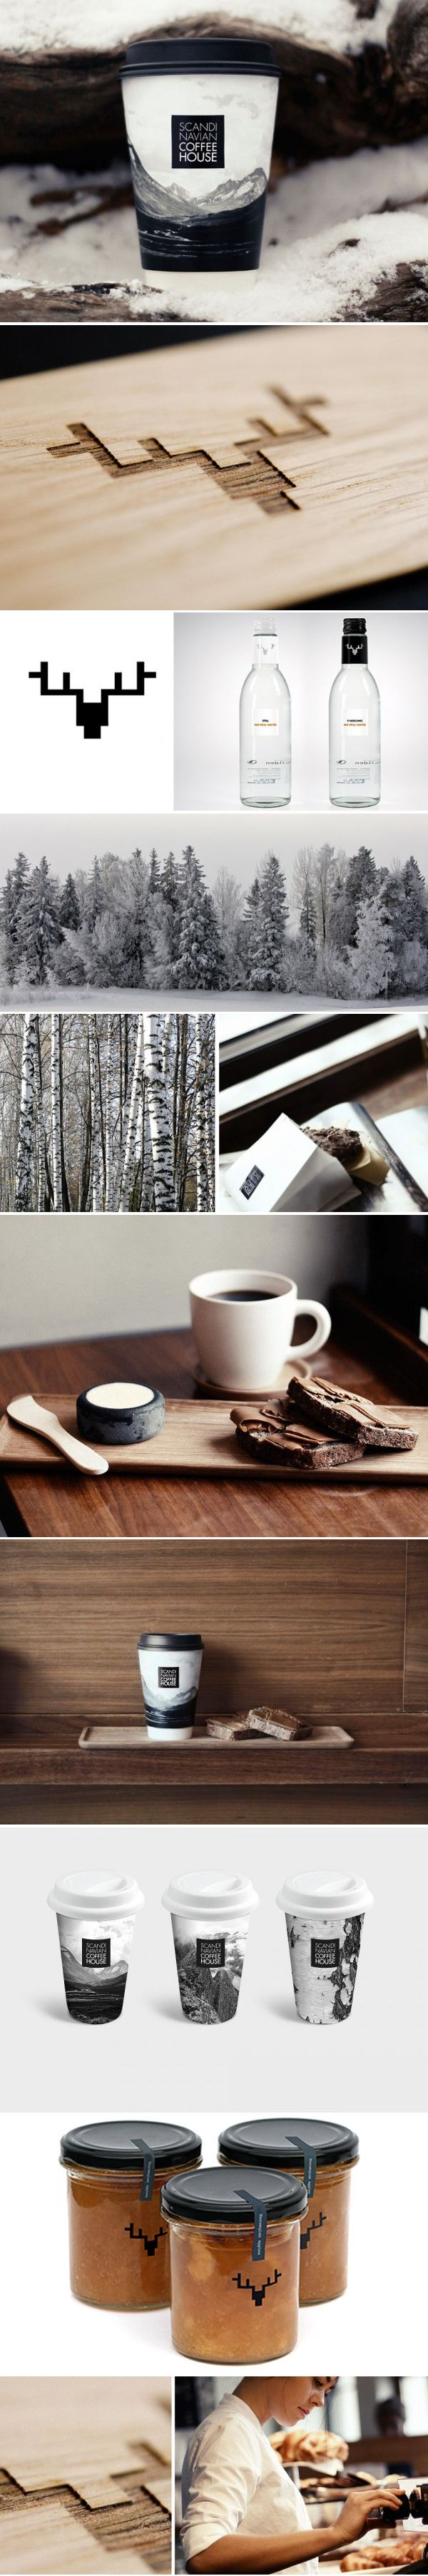 Time for coffee from Scandinavian Coffee House #identity #packaging #branding #marketing PD